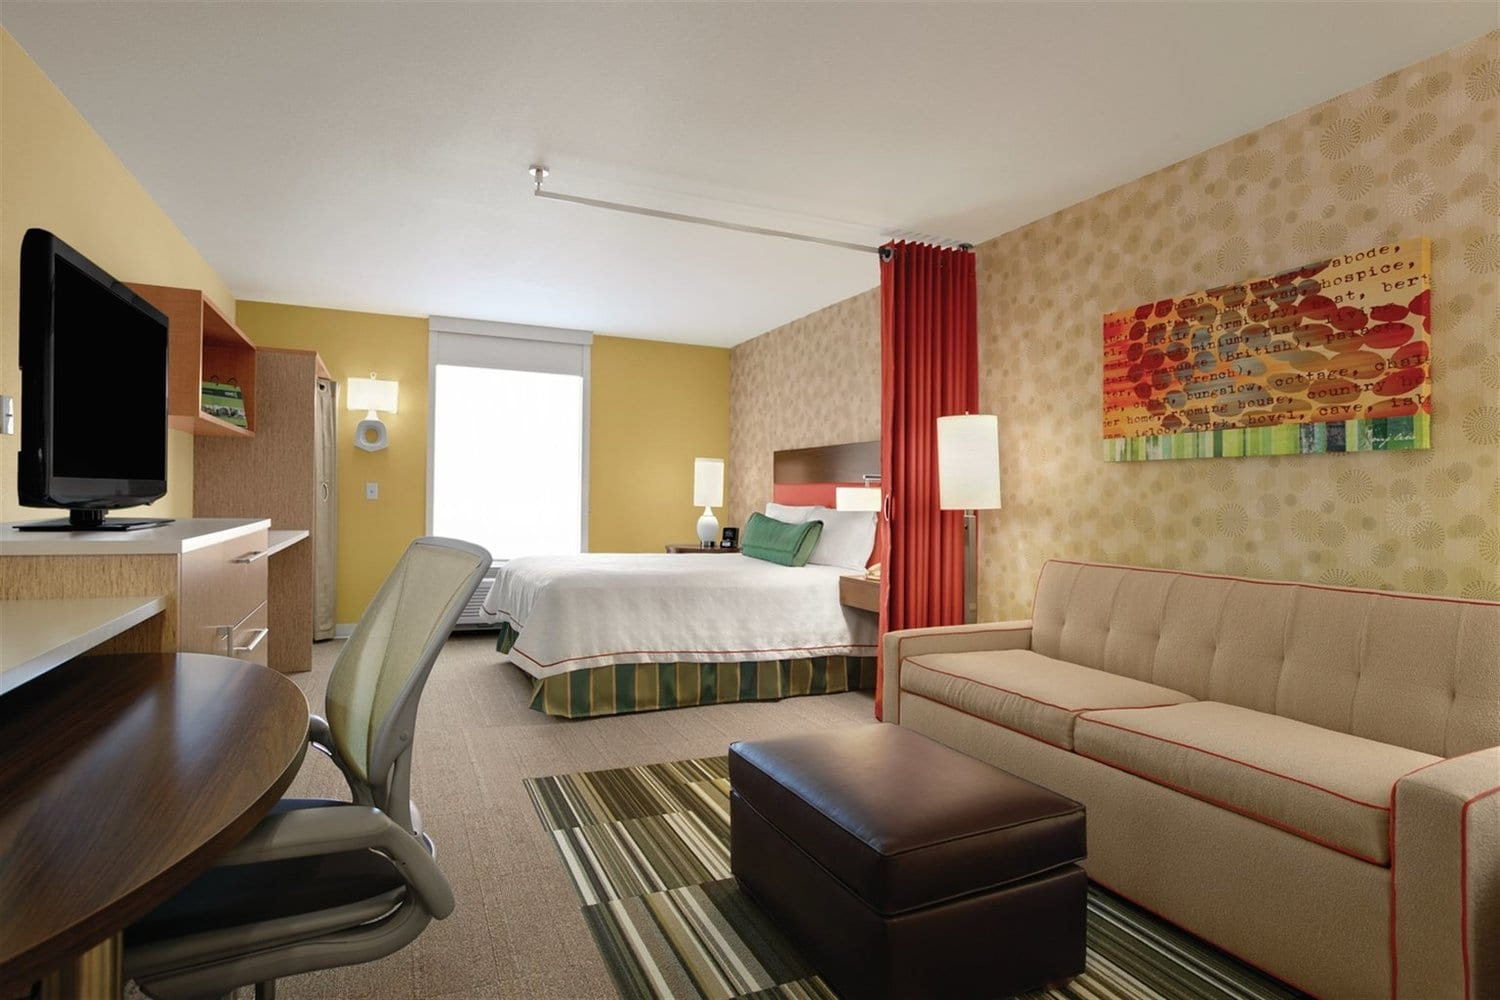 Home2 Suites by Hilton Longmont CO Room